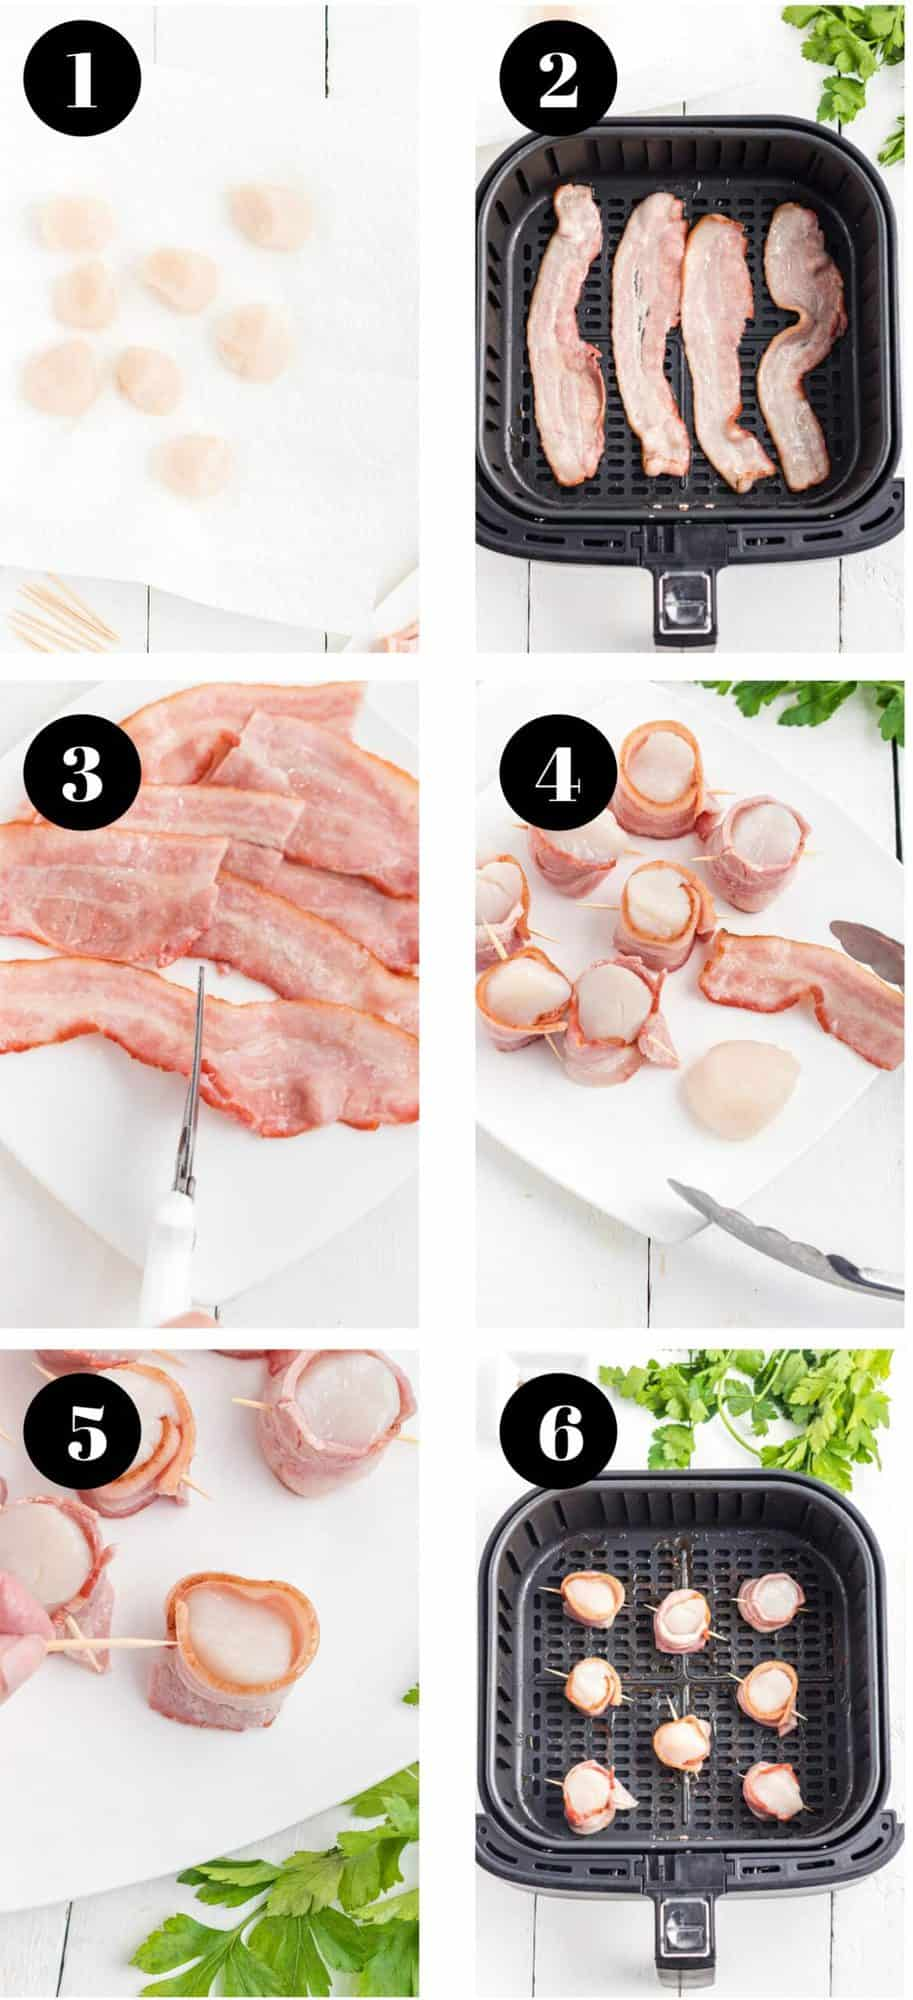 The steps for making scallops in an air fryer